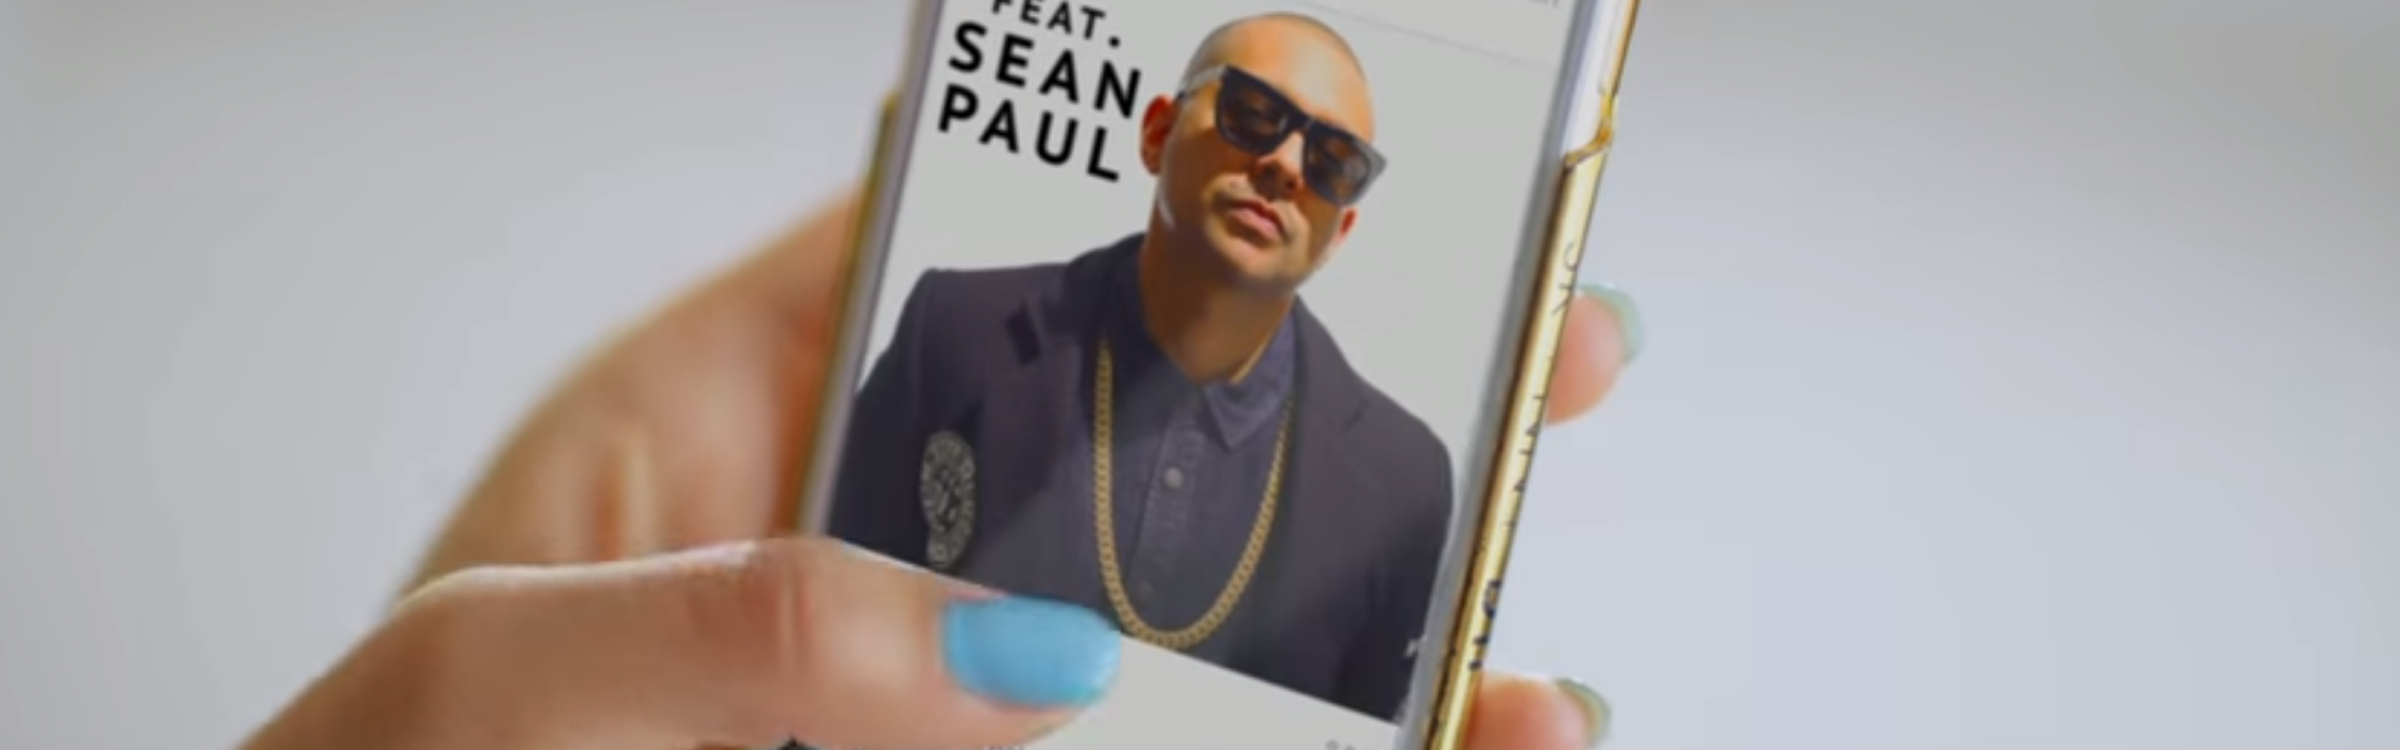 Seanpaul littlemix2 edited 1